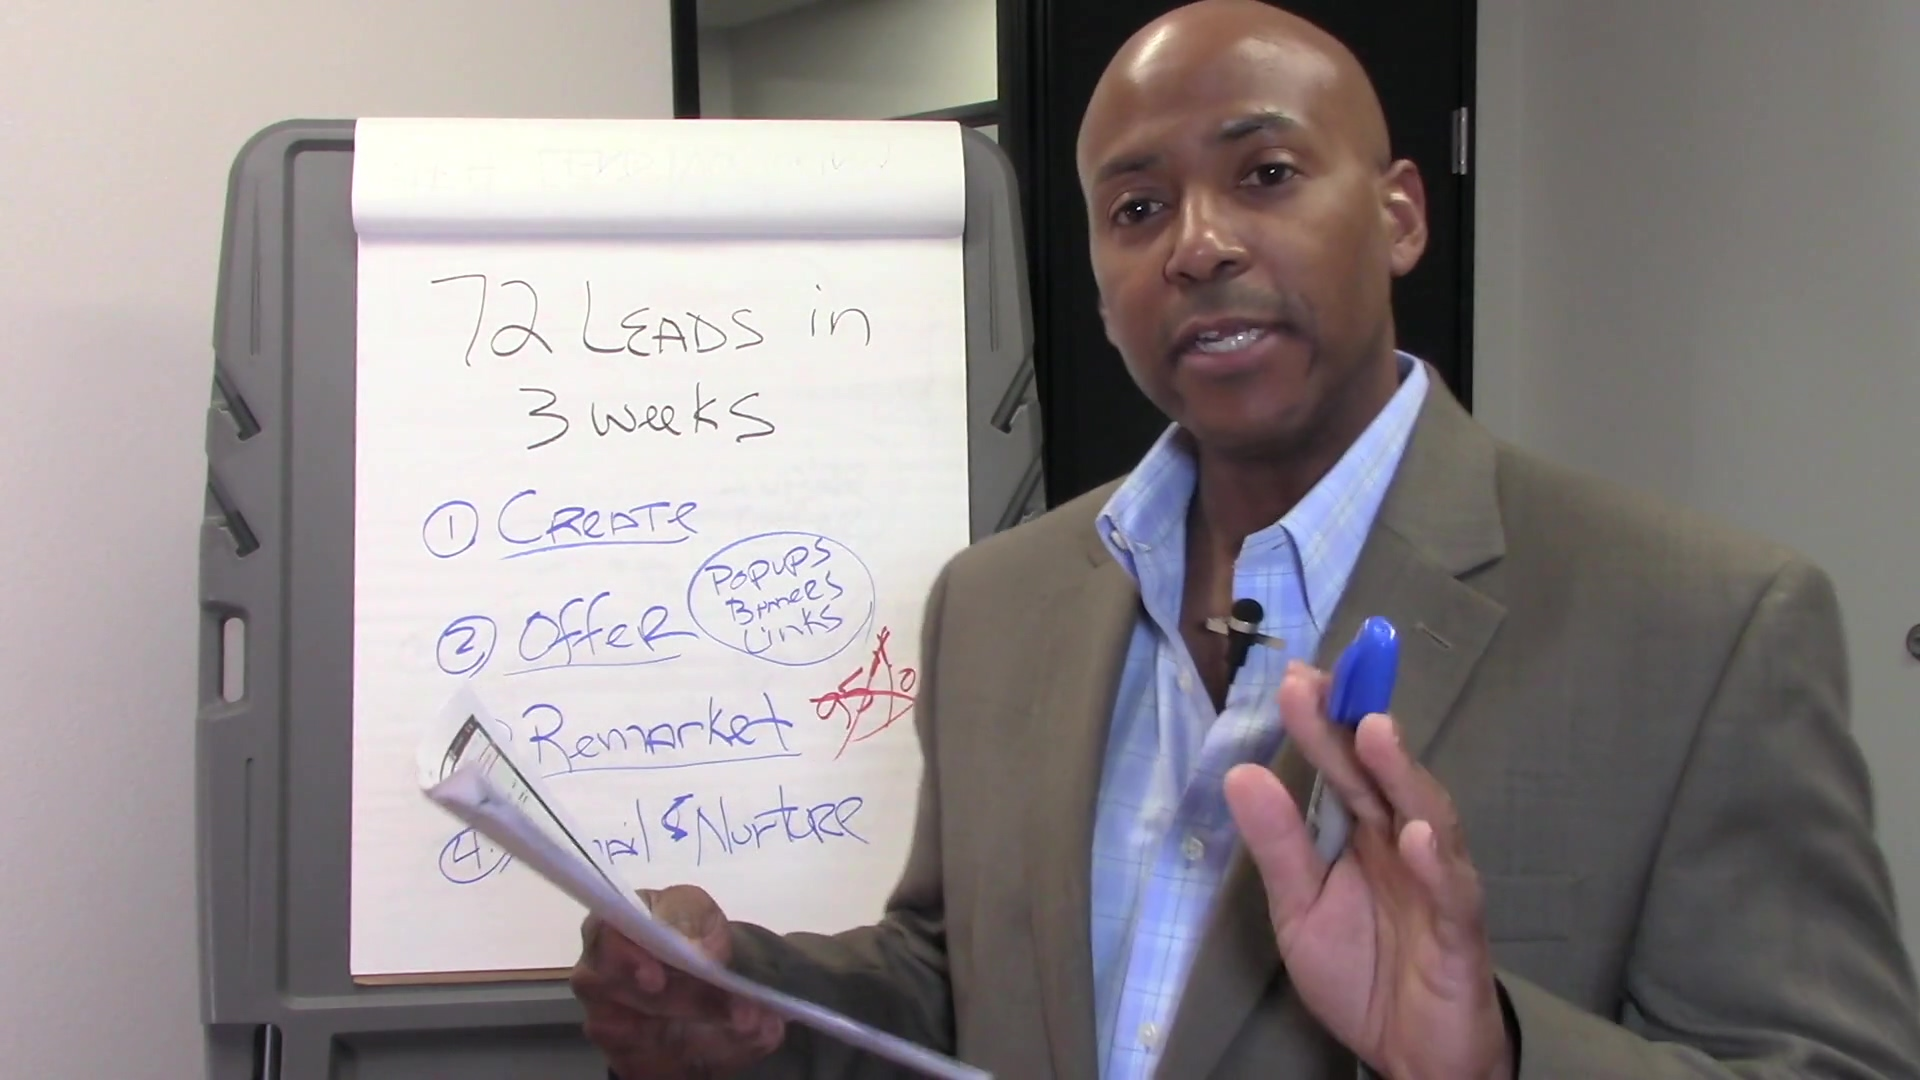 72 leads in 3 weeks - facebook ads2 - darrell